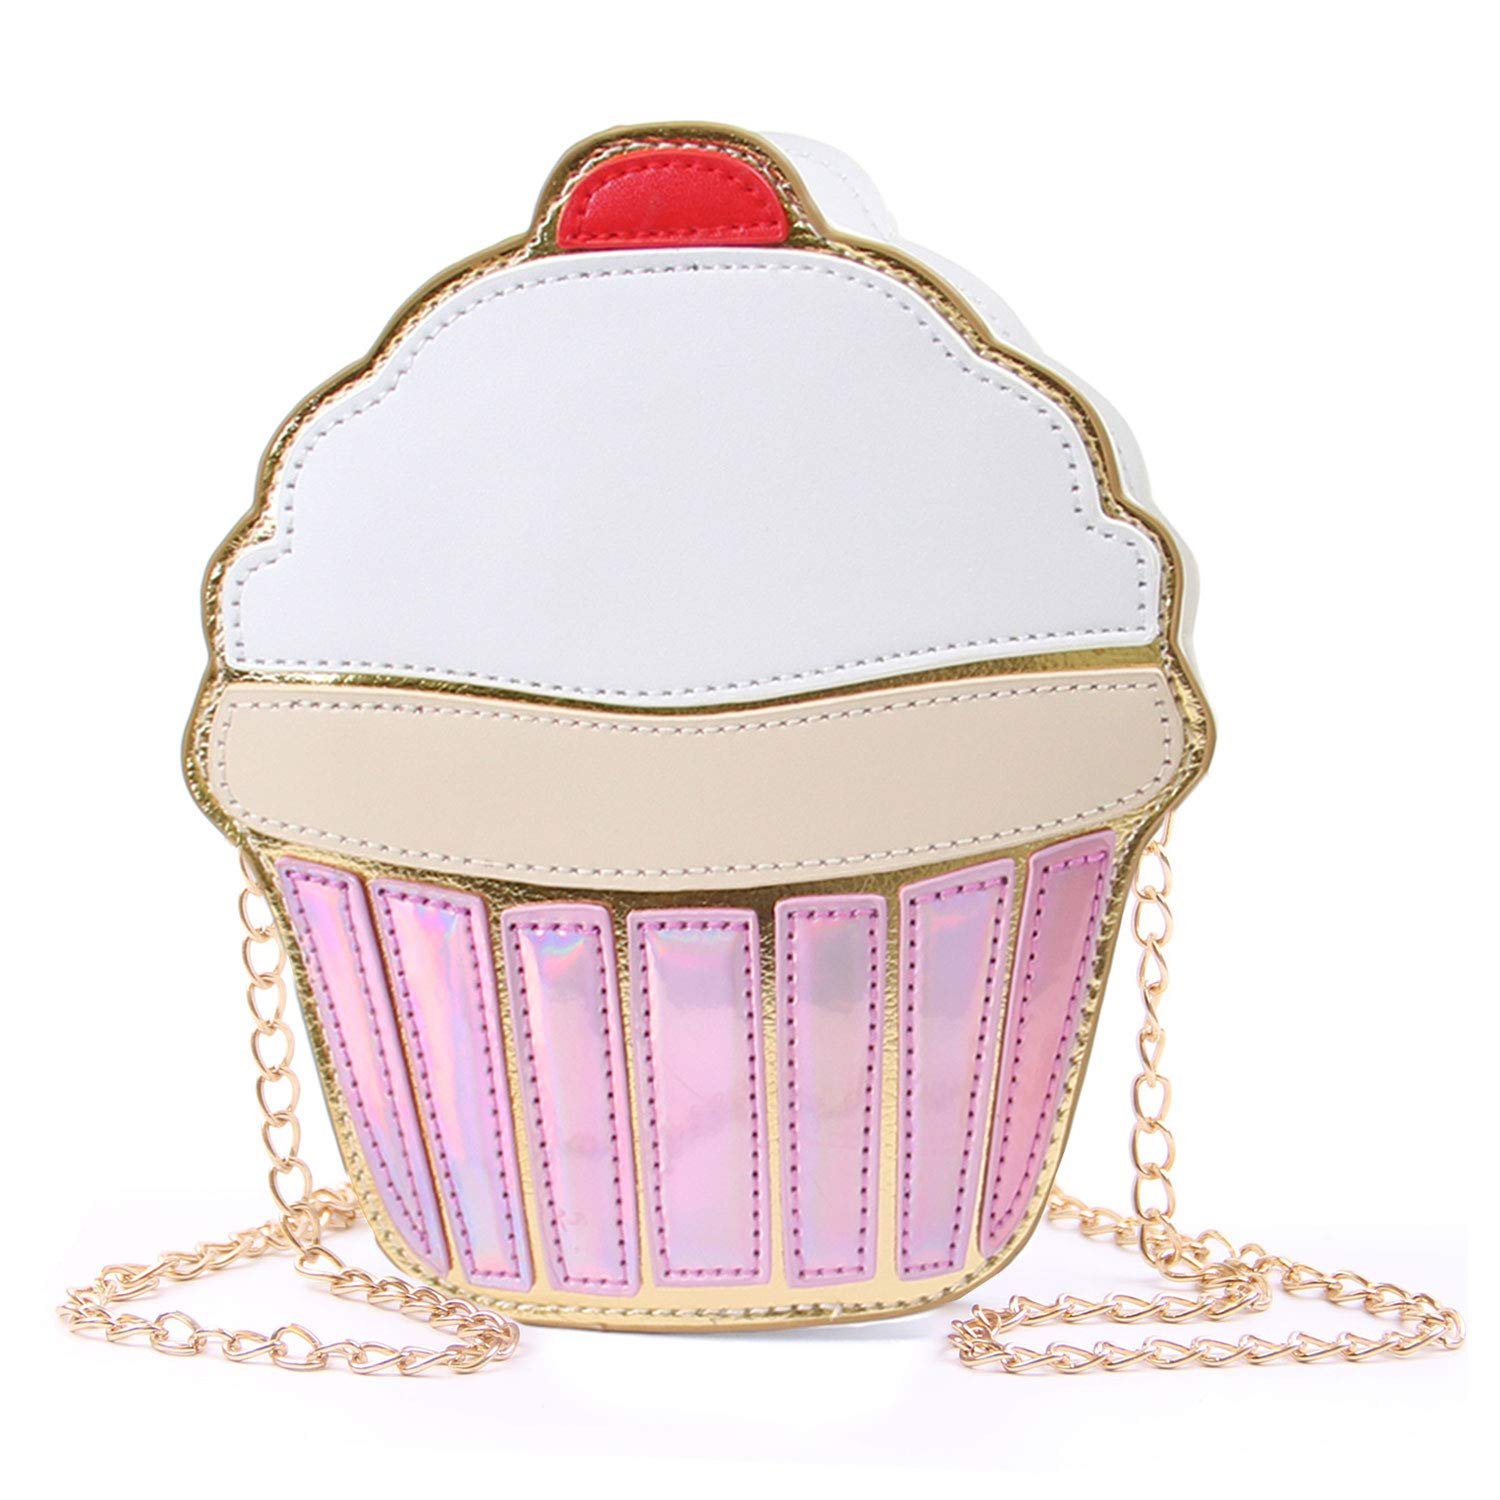 SUKUTU Girls Cupcake Popcorn PU Leather Crossbody Bag Shoulder Bag Small Purse and Cell Phone Bag by SUKUTU